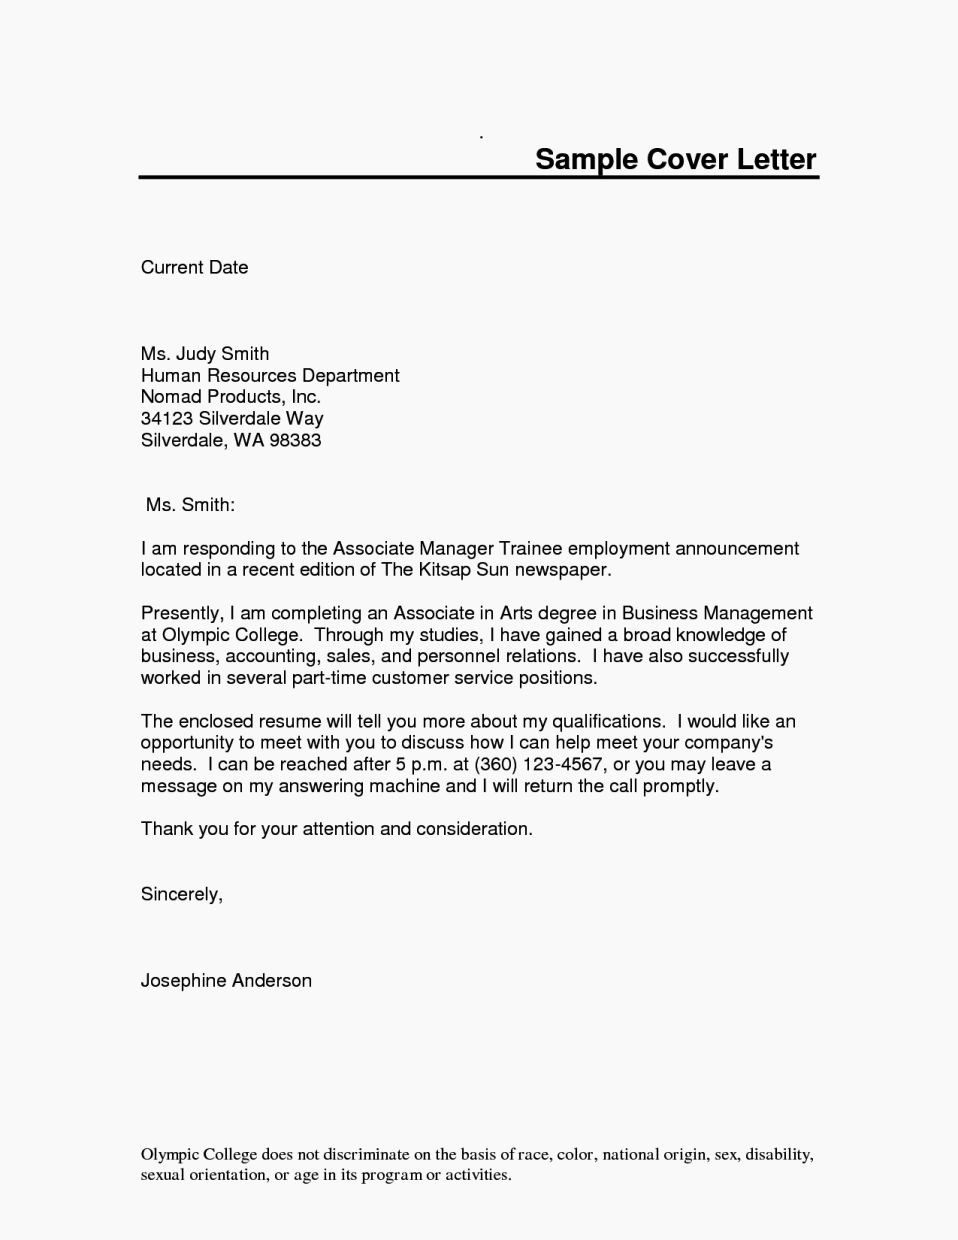 Resumes Fill In the Blanks Unique Fill In Resume Cover Letter Resume Template